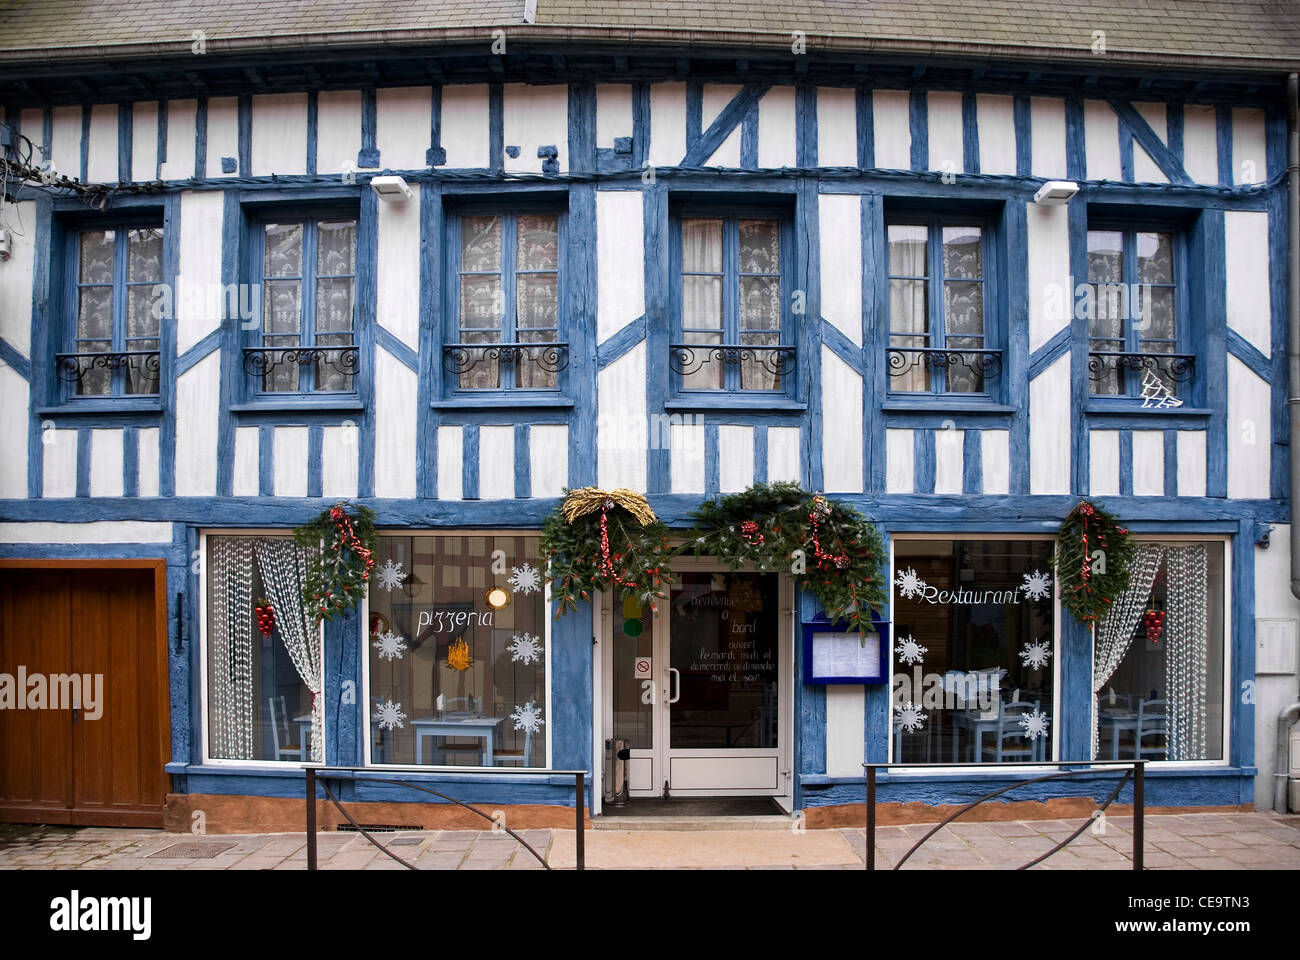 The Facade Of A Small Italian Restaurant In A Small French Village Stock Photo Alamy